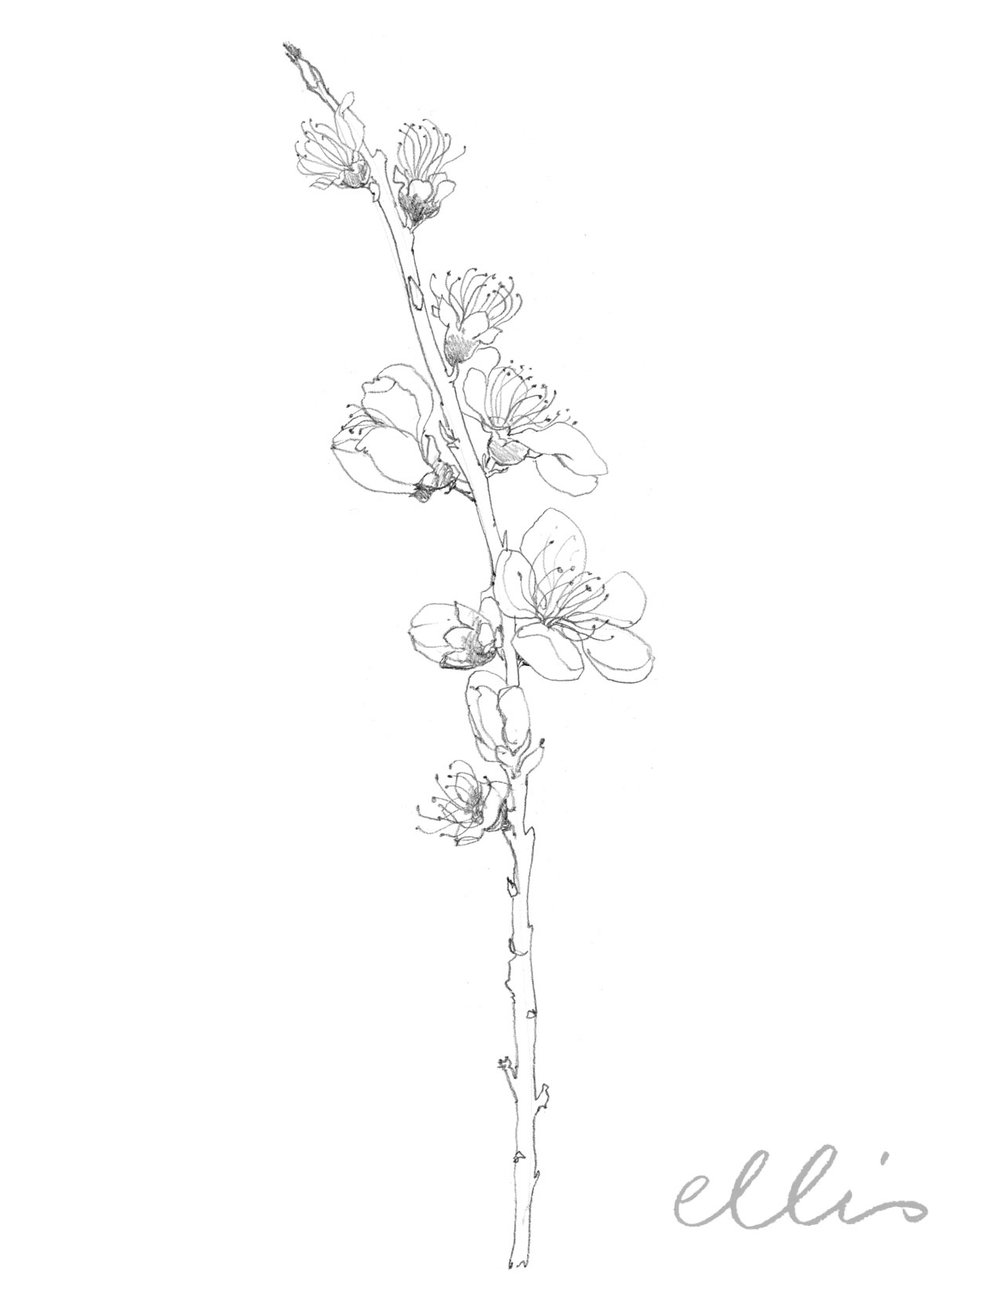 Erin Ellis_100 days project botanical drawings_2013-88.jpg